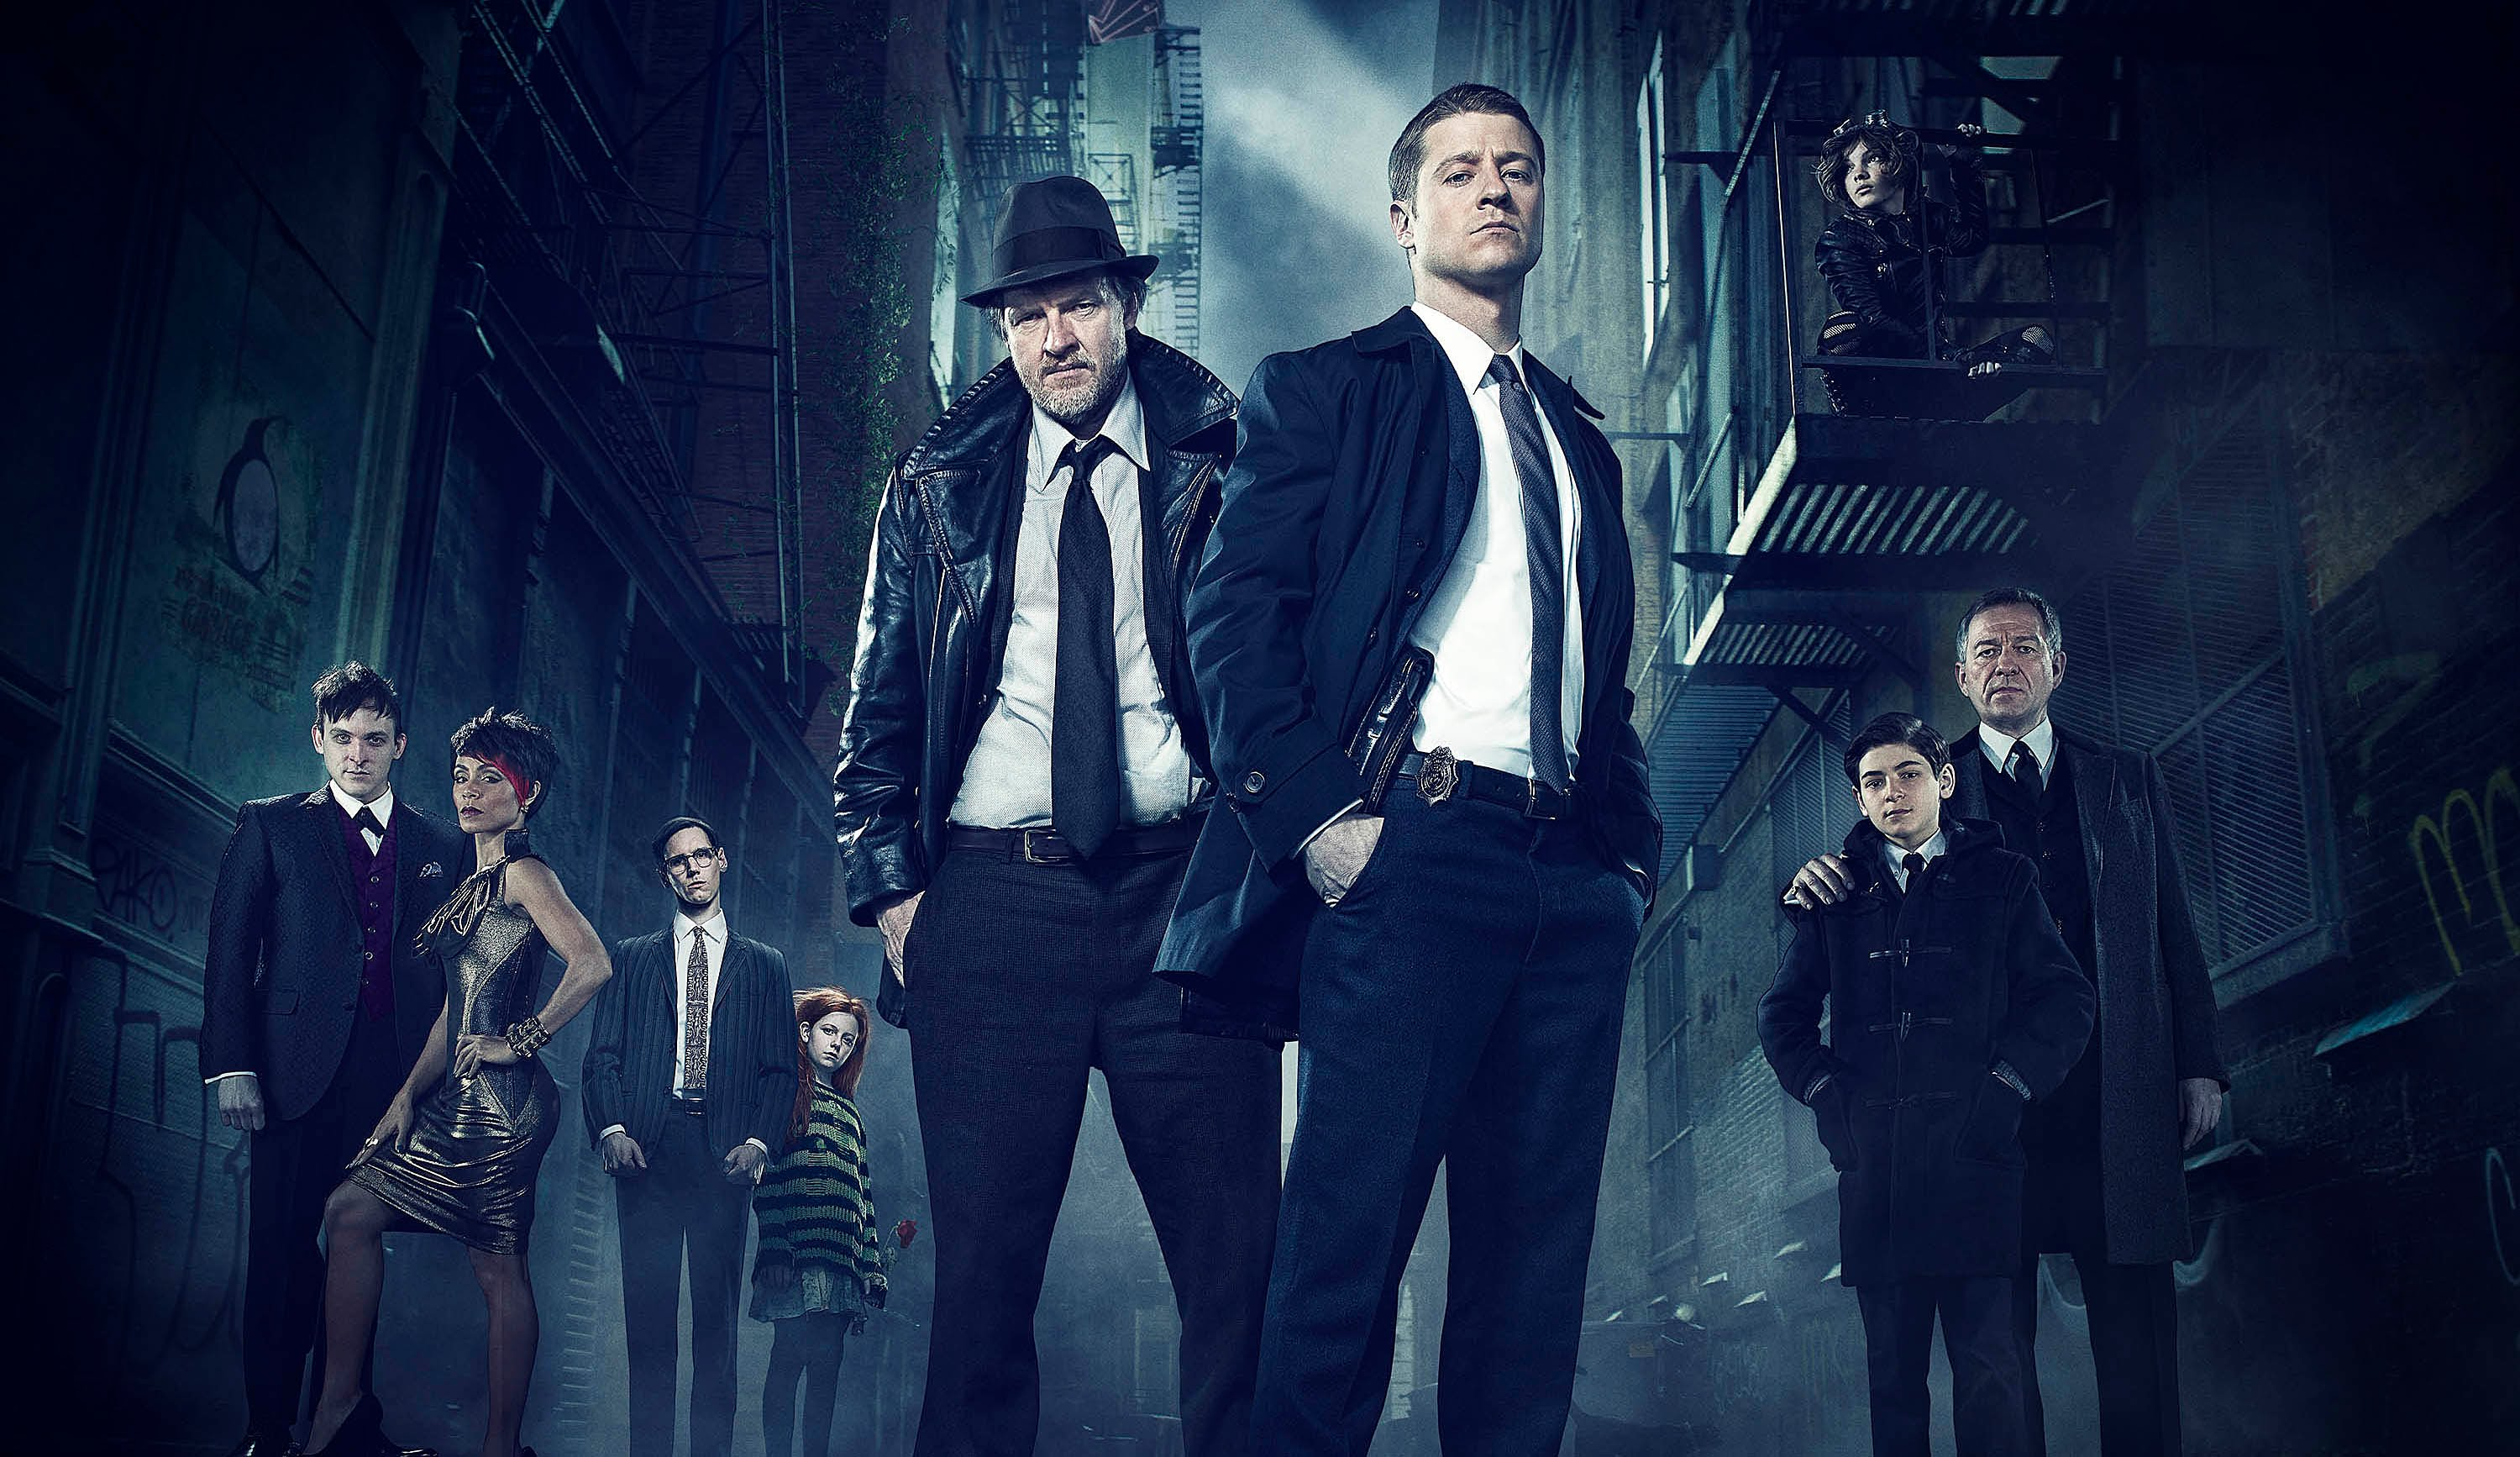 Exklusives Preview: GOTHAM